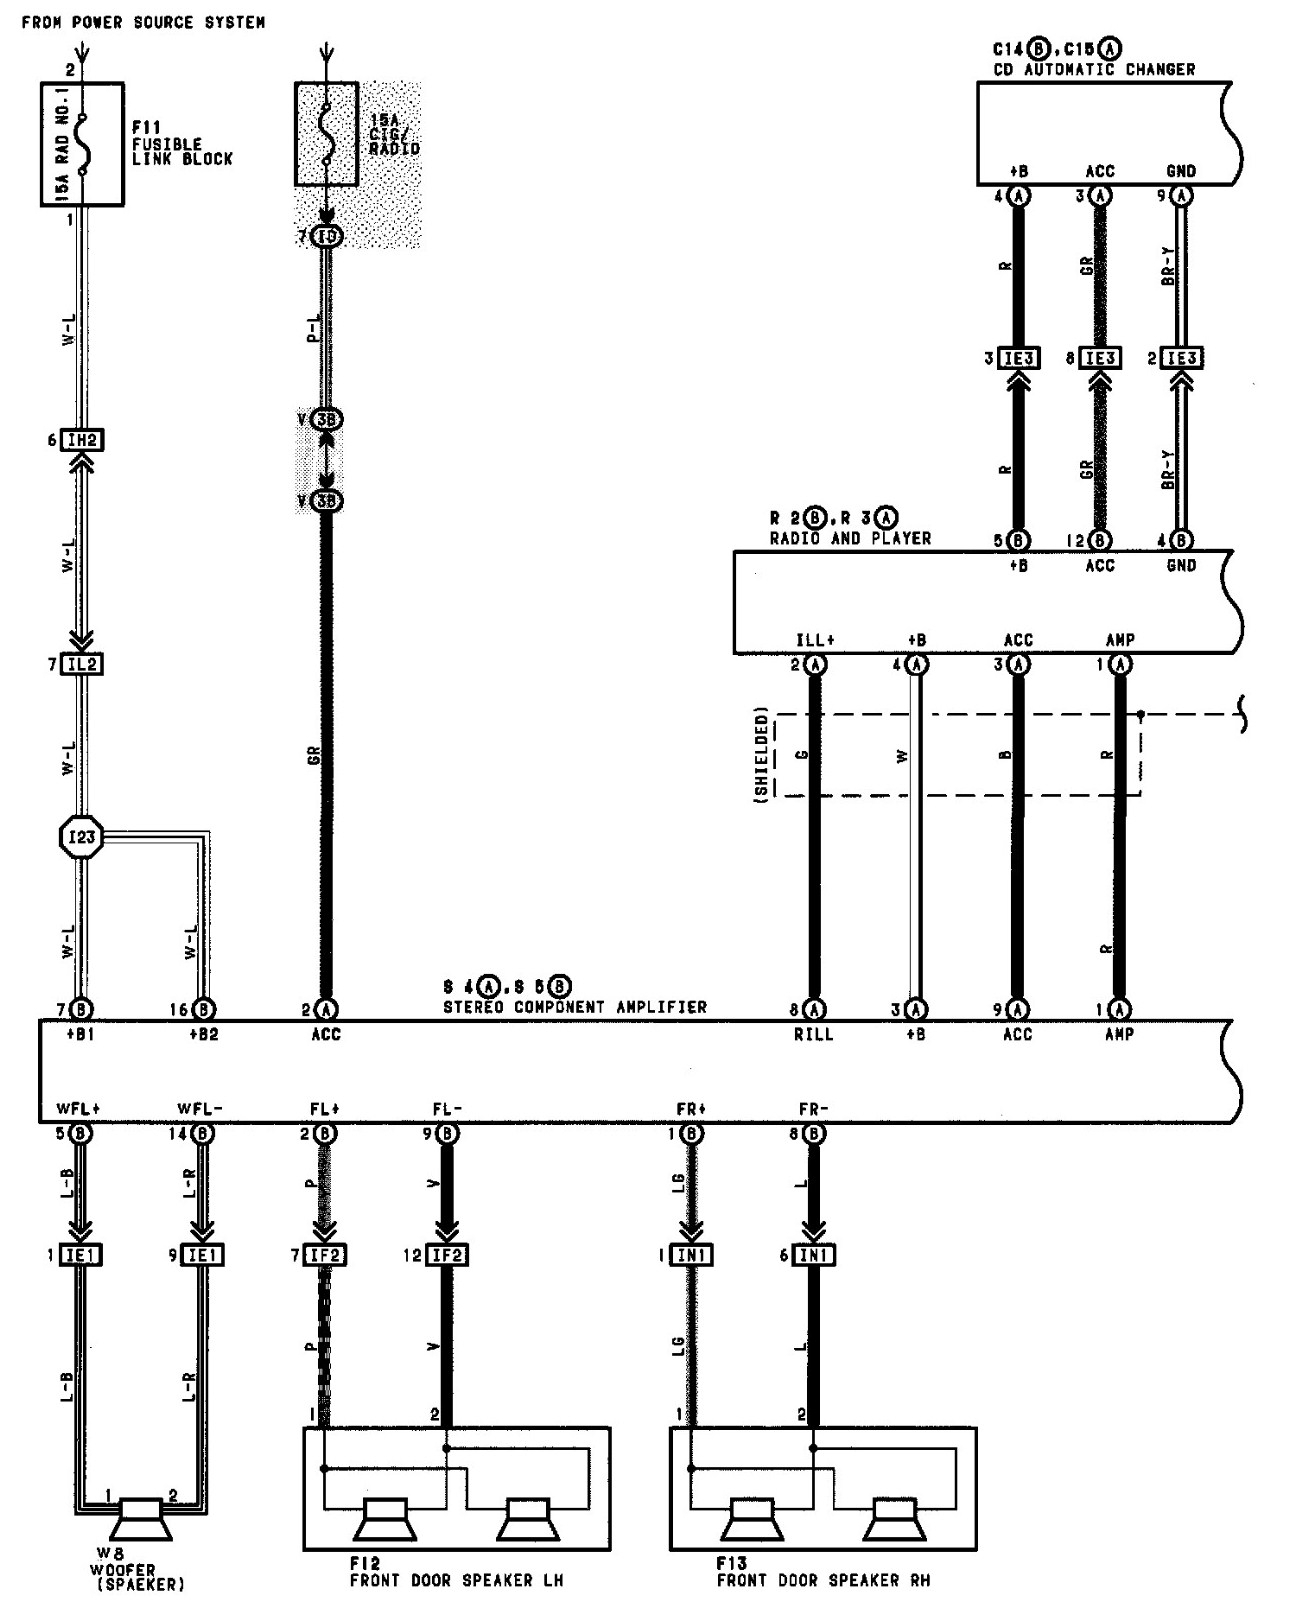 1997 camry stereo wire diagram